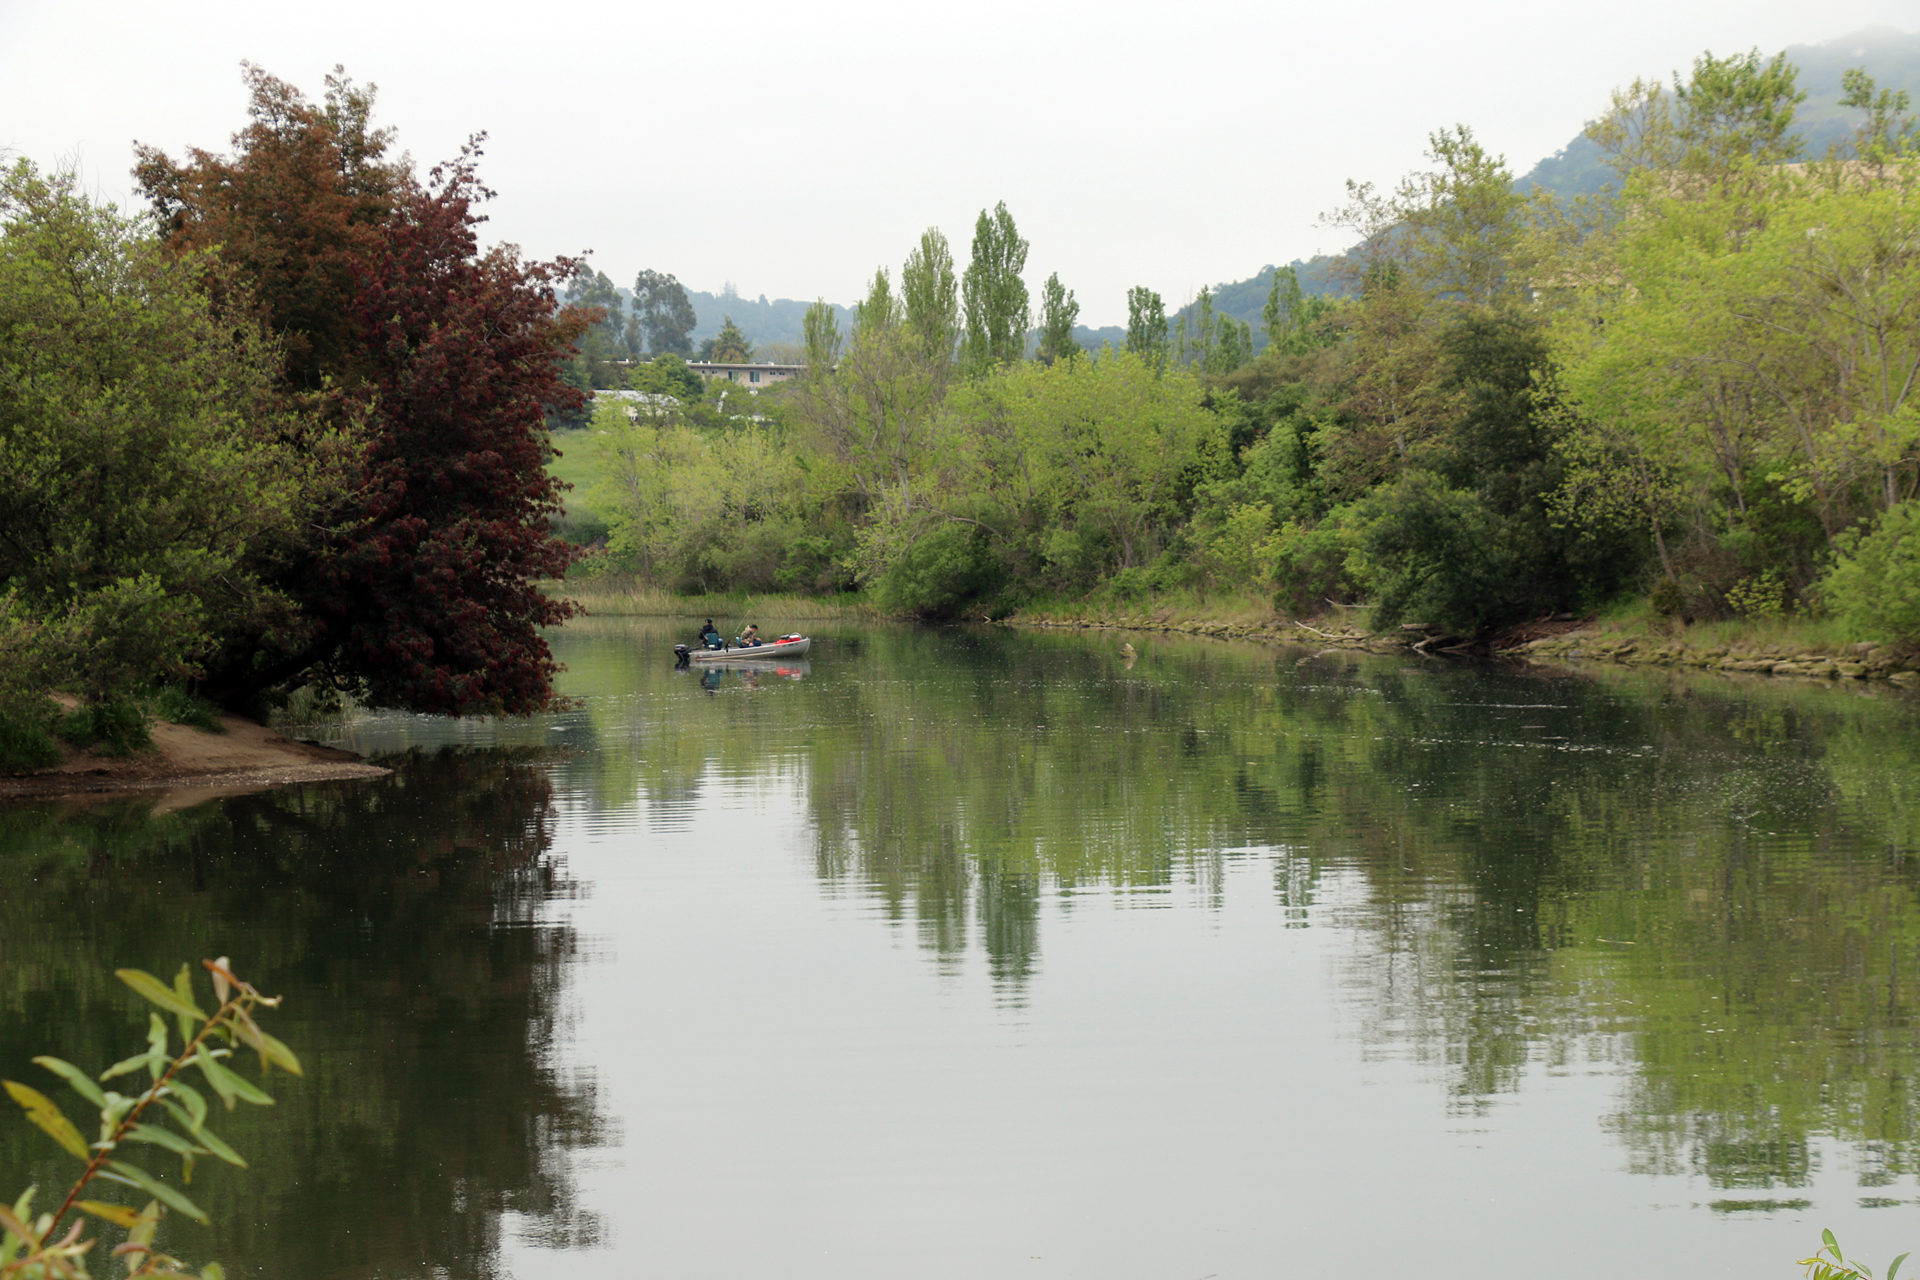 Fishing on the Napa River.